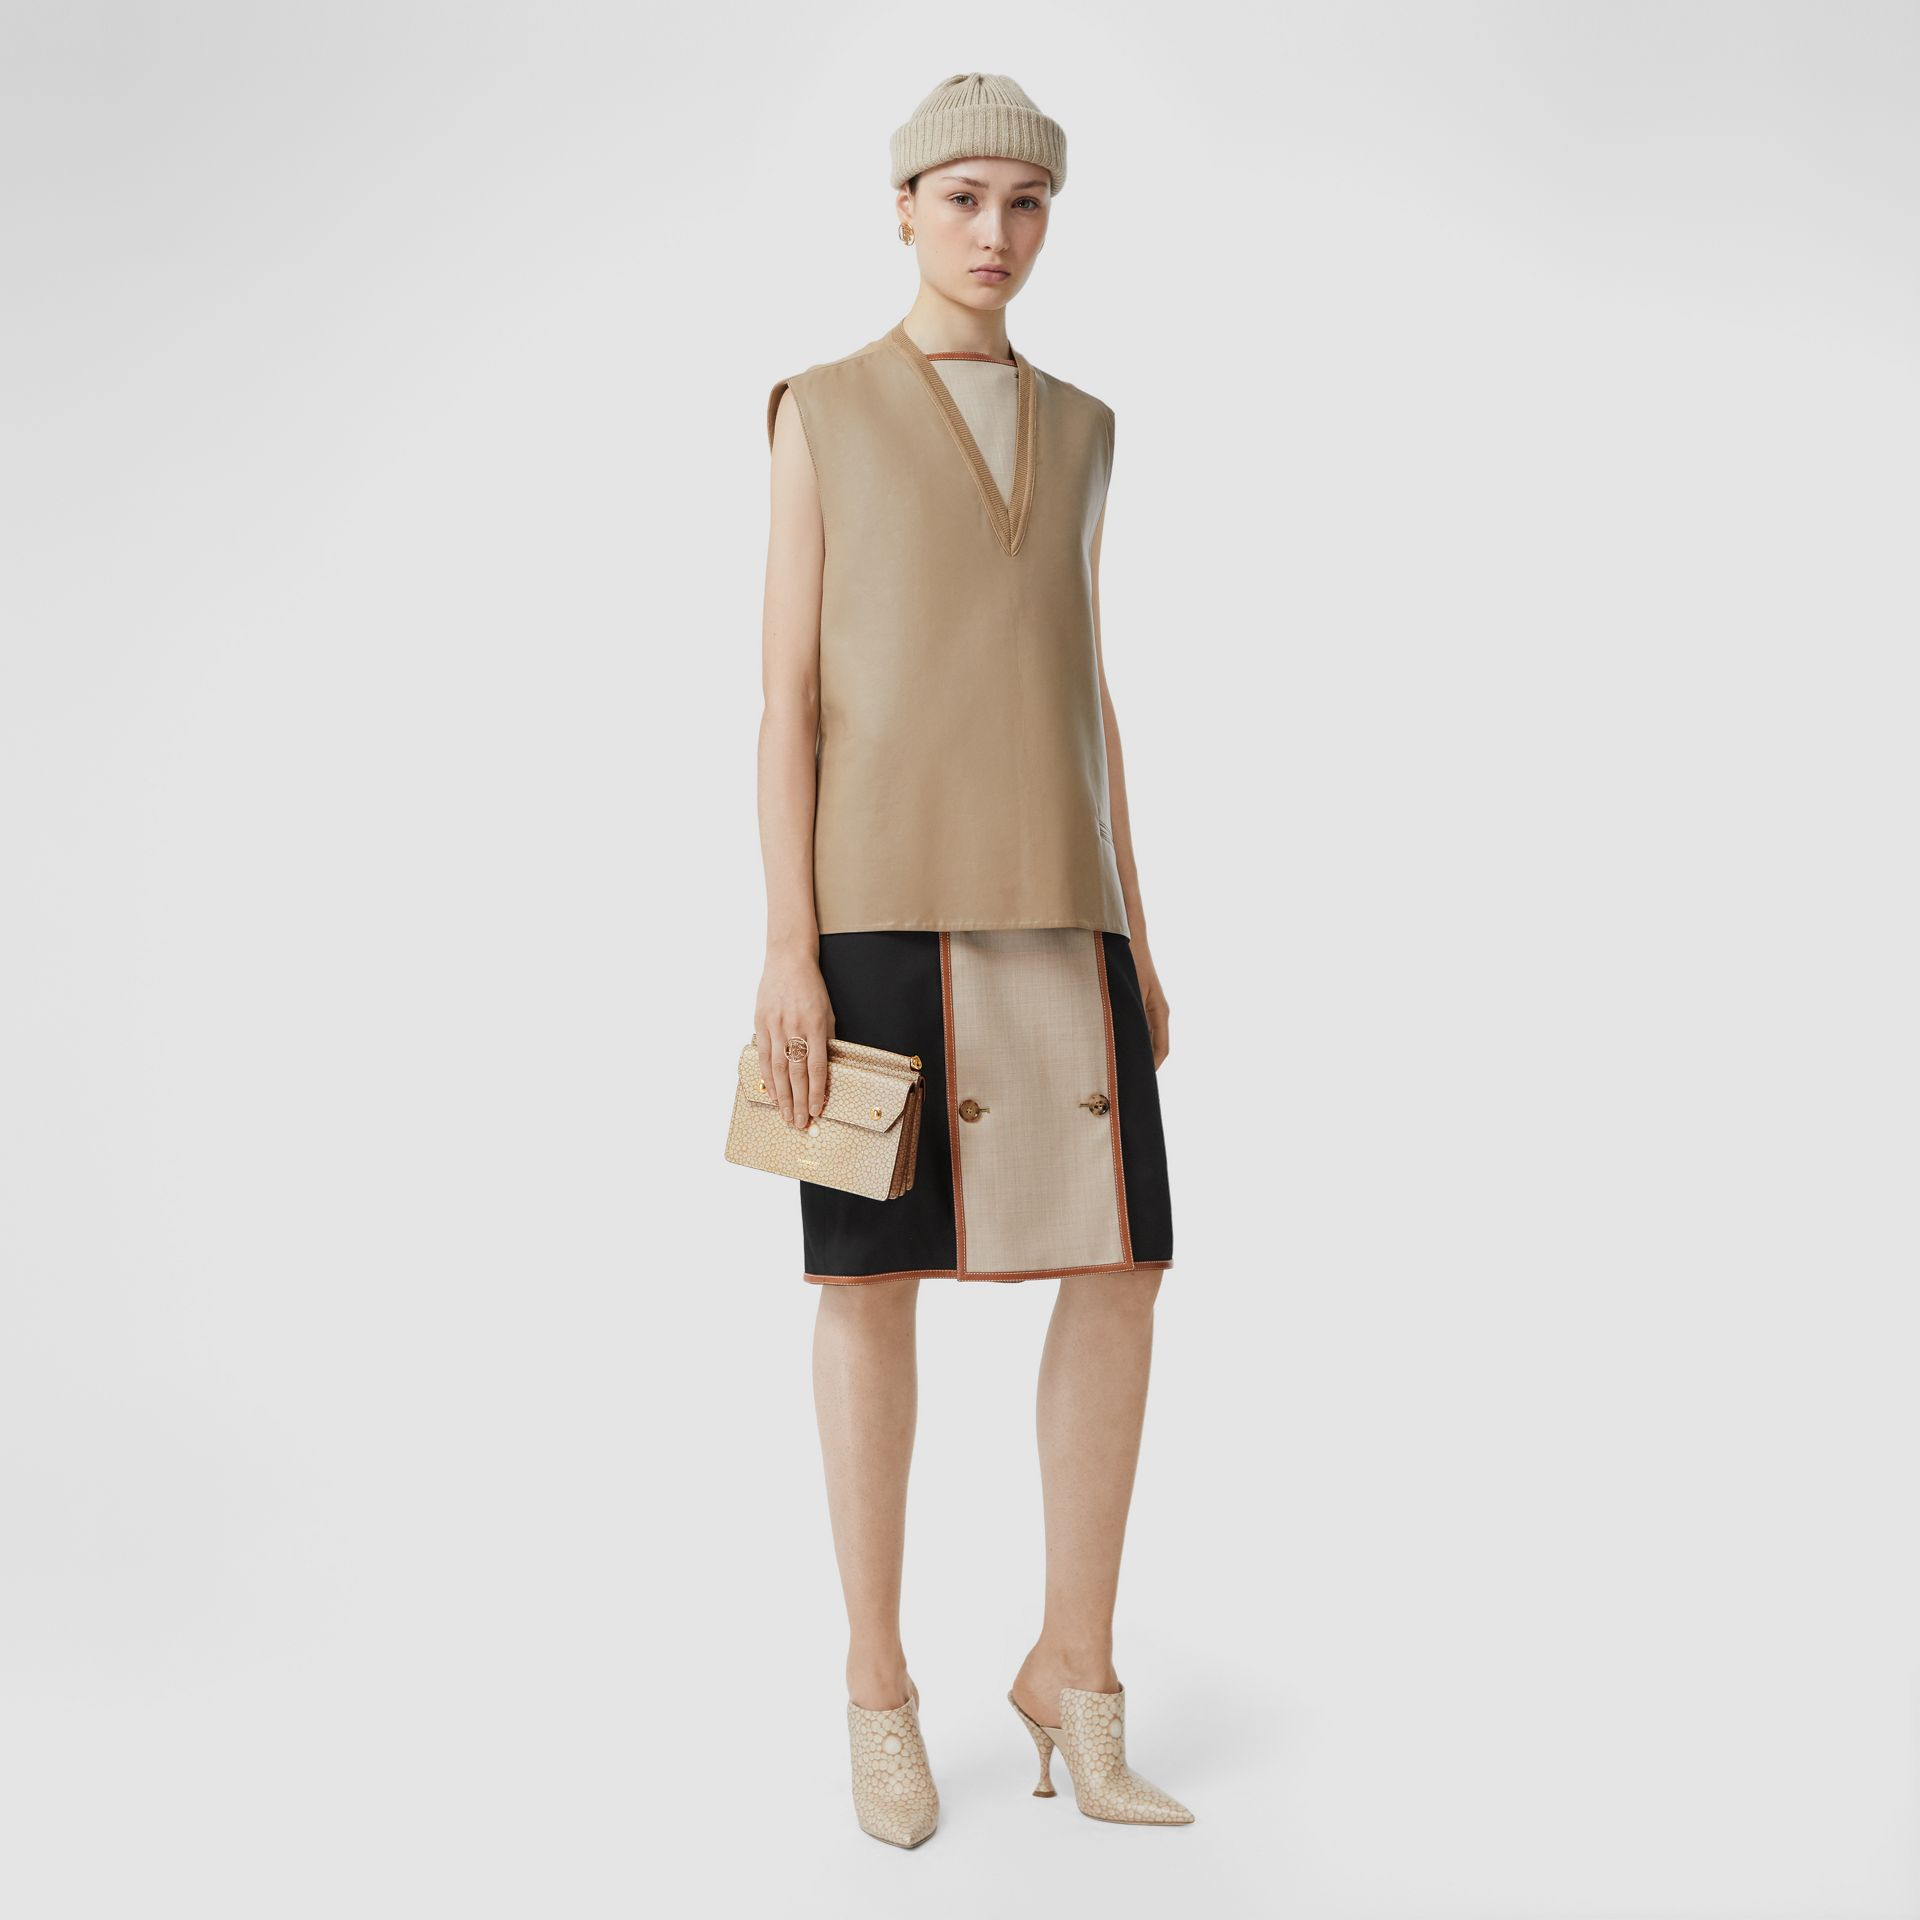 Mini Fish-scale Print Title Bag with Pocket Detail in Light Sand - Women | Burberry - gallery image 5